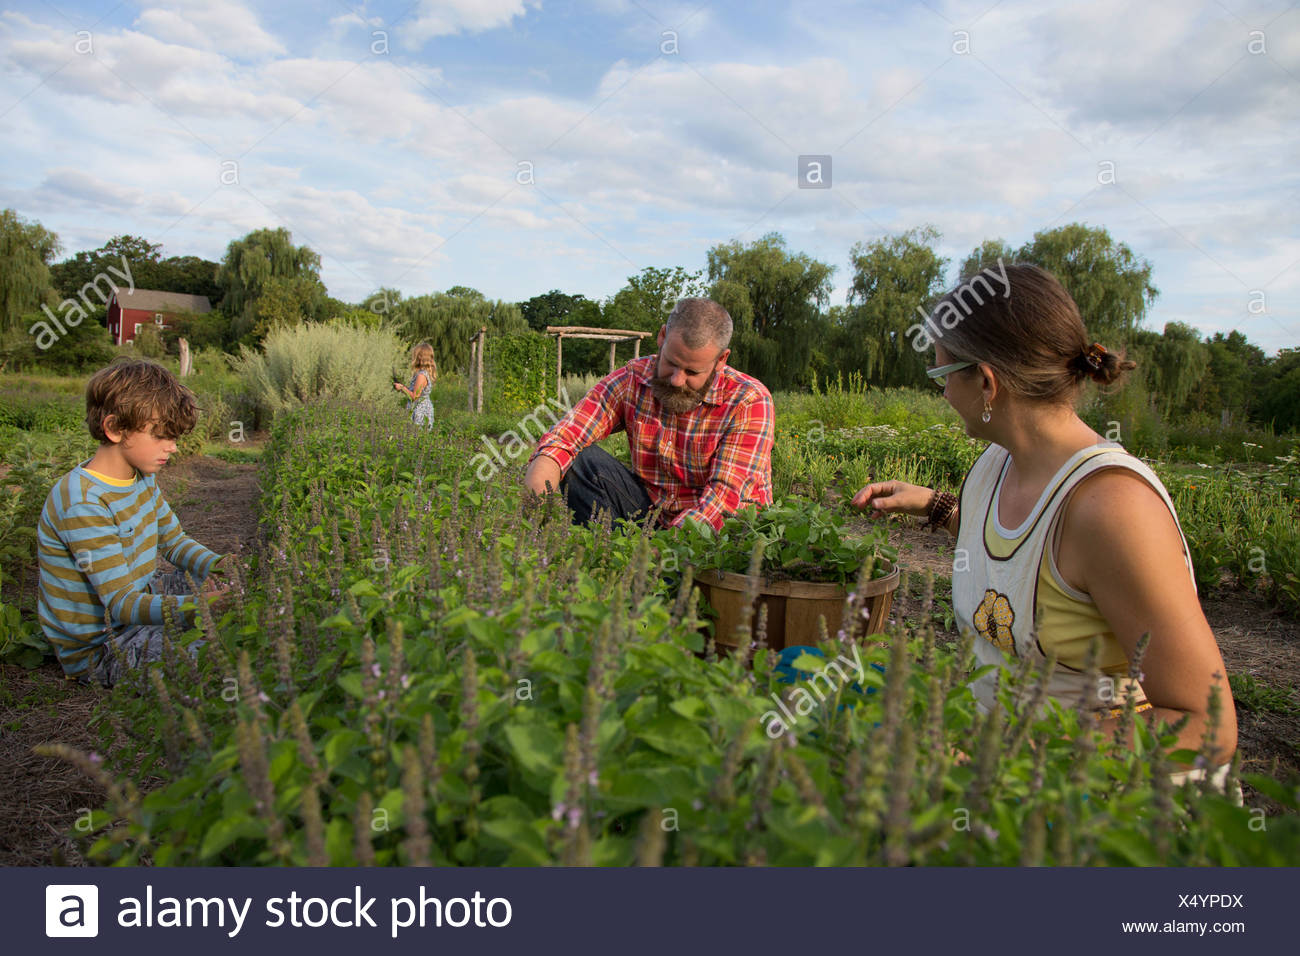 Family working together on herb farm - Stock Image